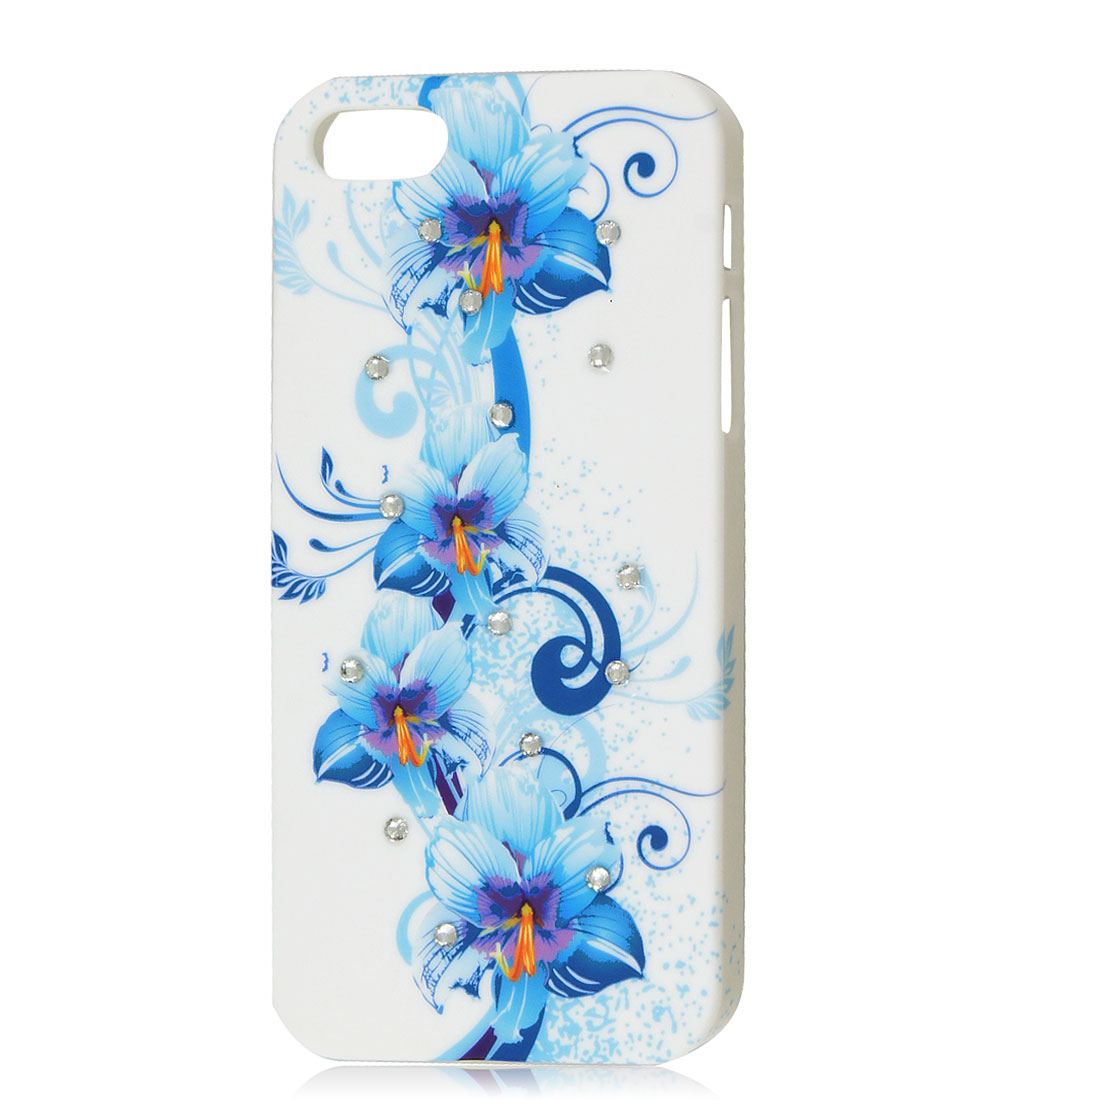 Shiny Rhinestone Blue Flower Hard Back Case Cover Protector White for iPhone 5G